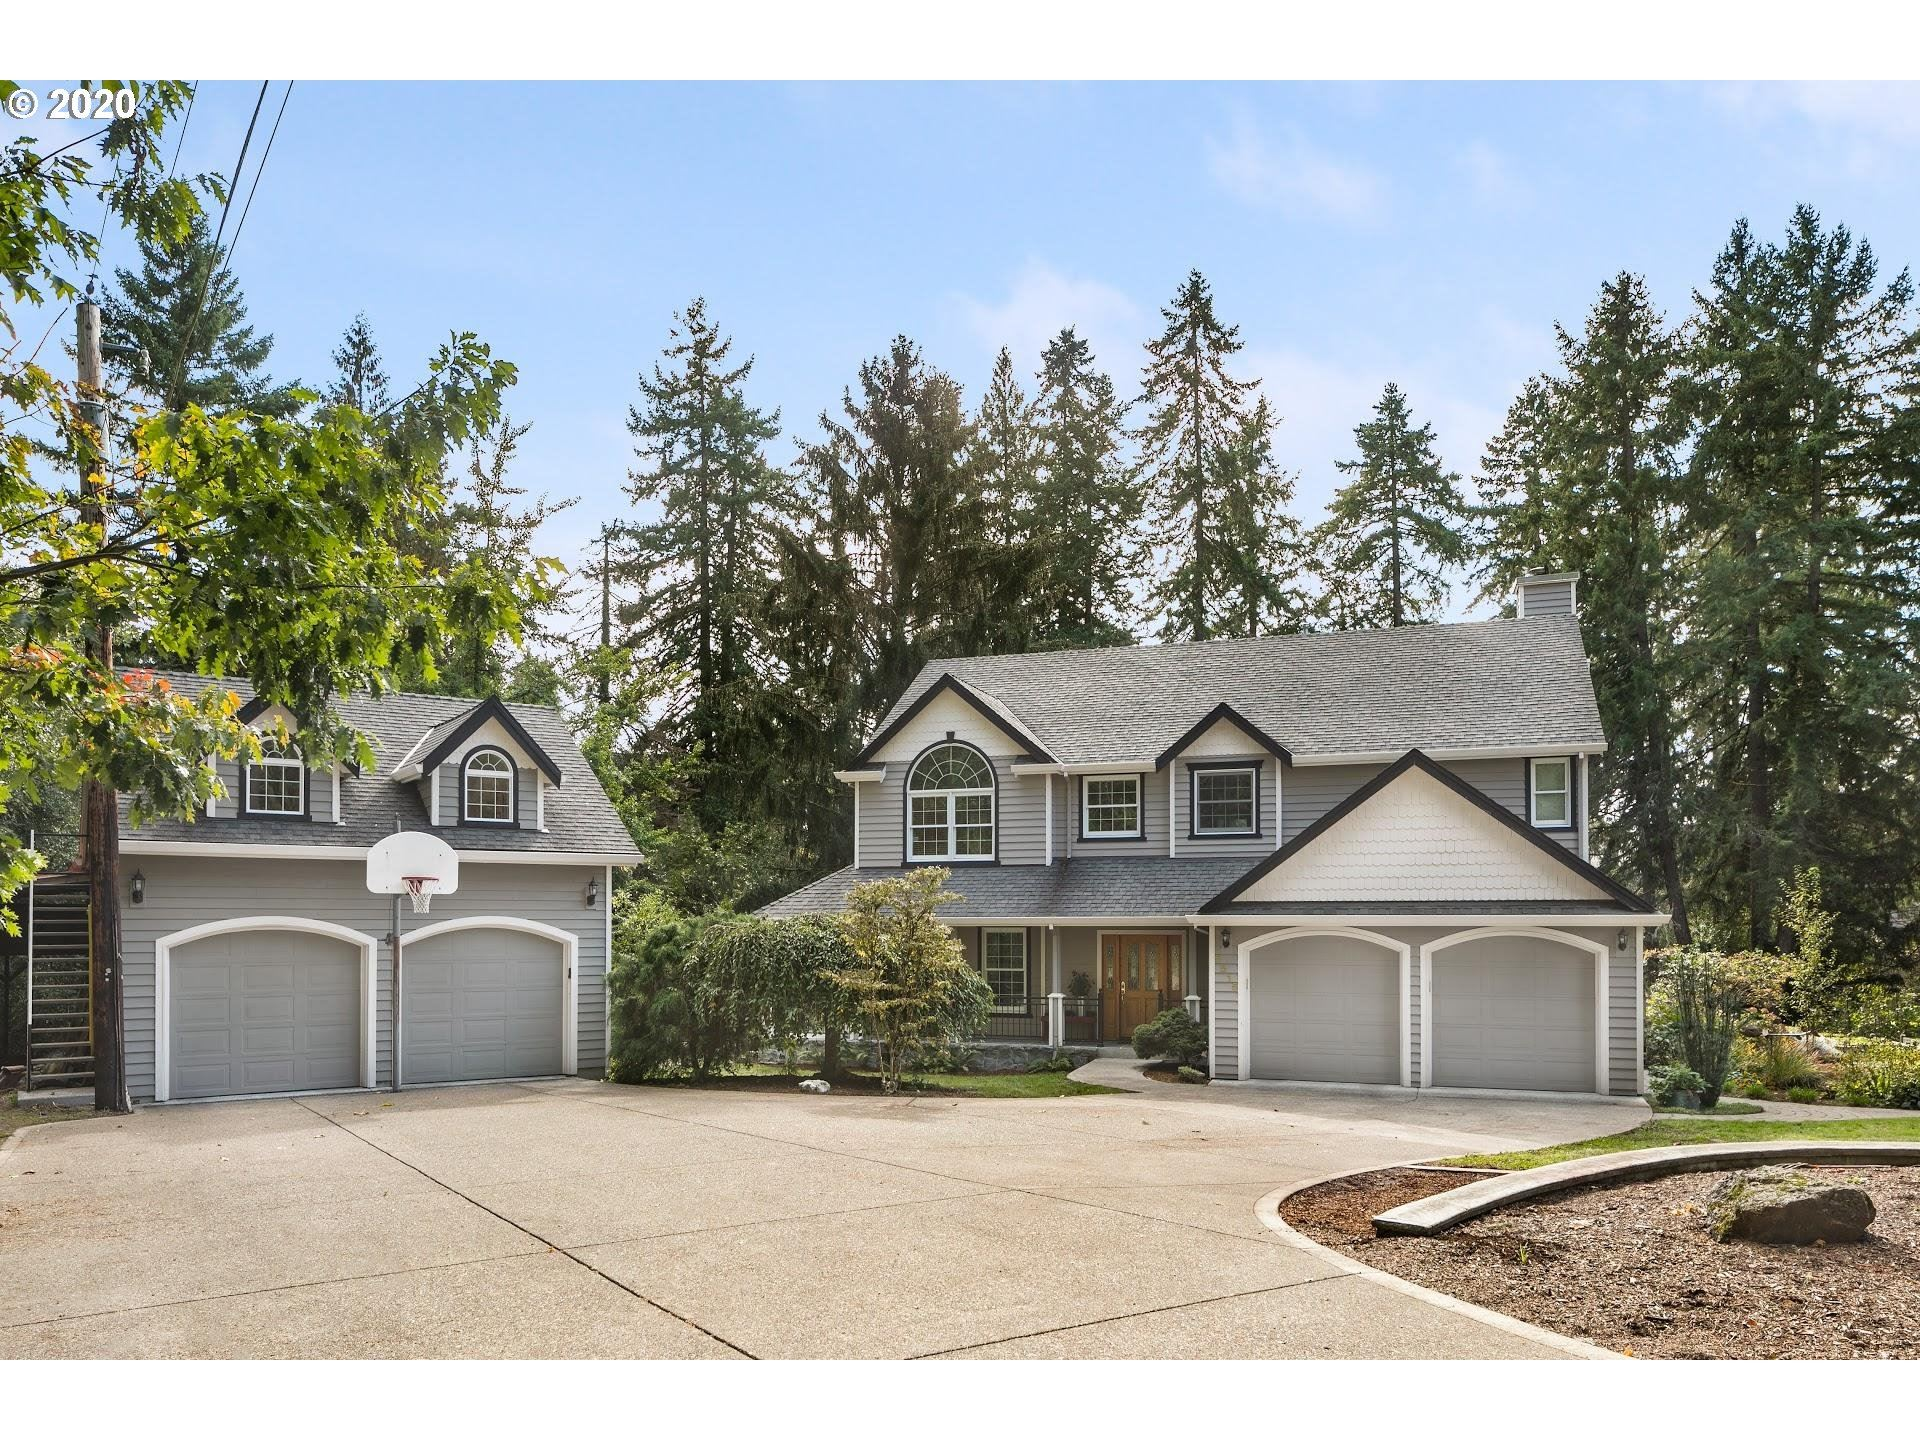 5515 SW 63RD AVE, Portland, OR 97221 - MLS#: 20162107